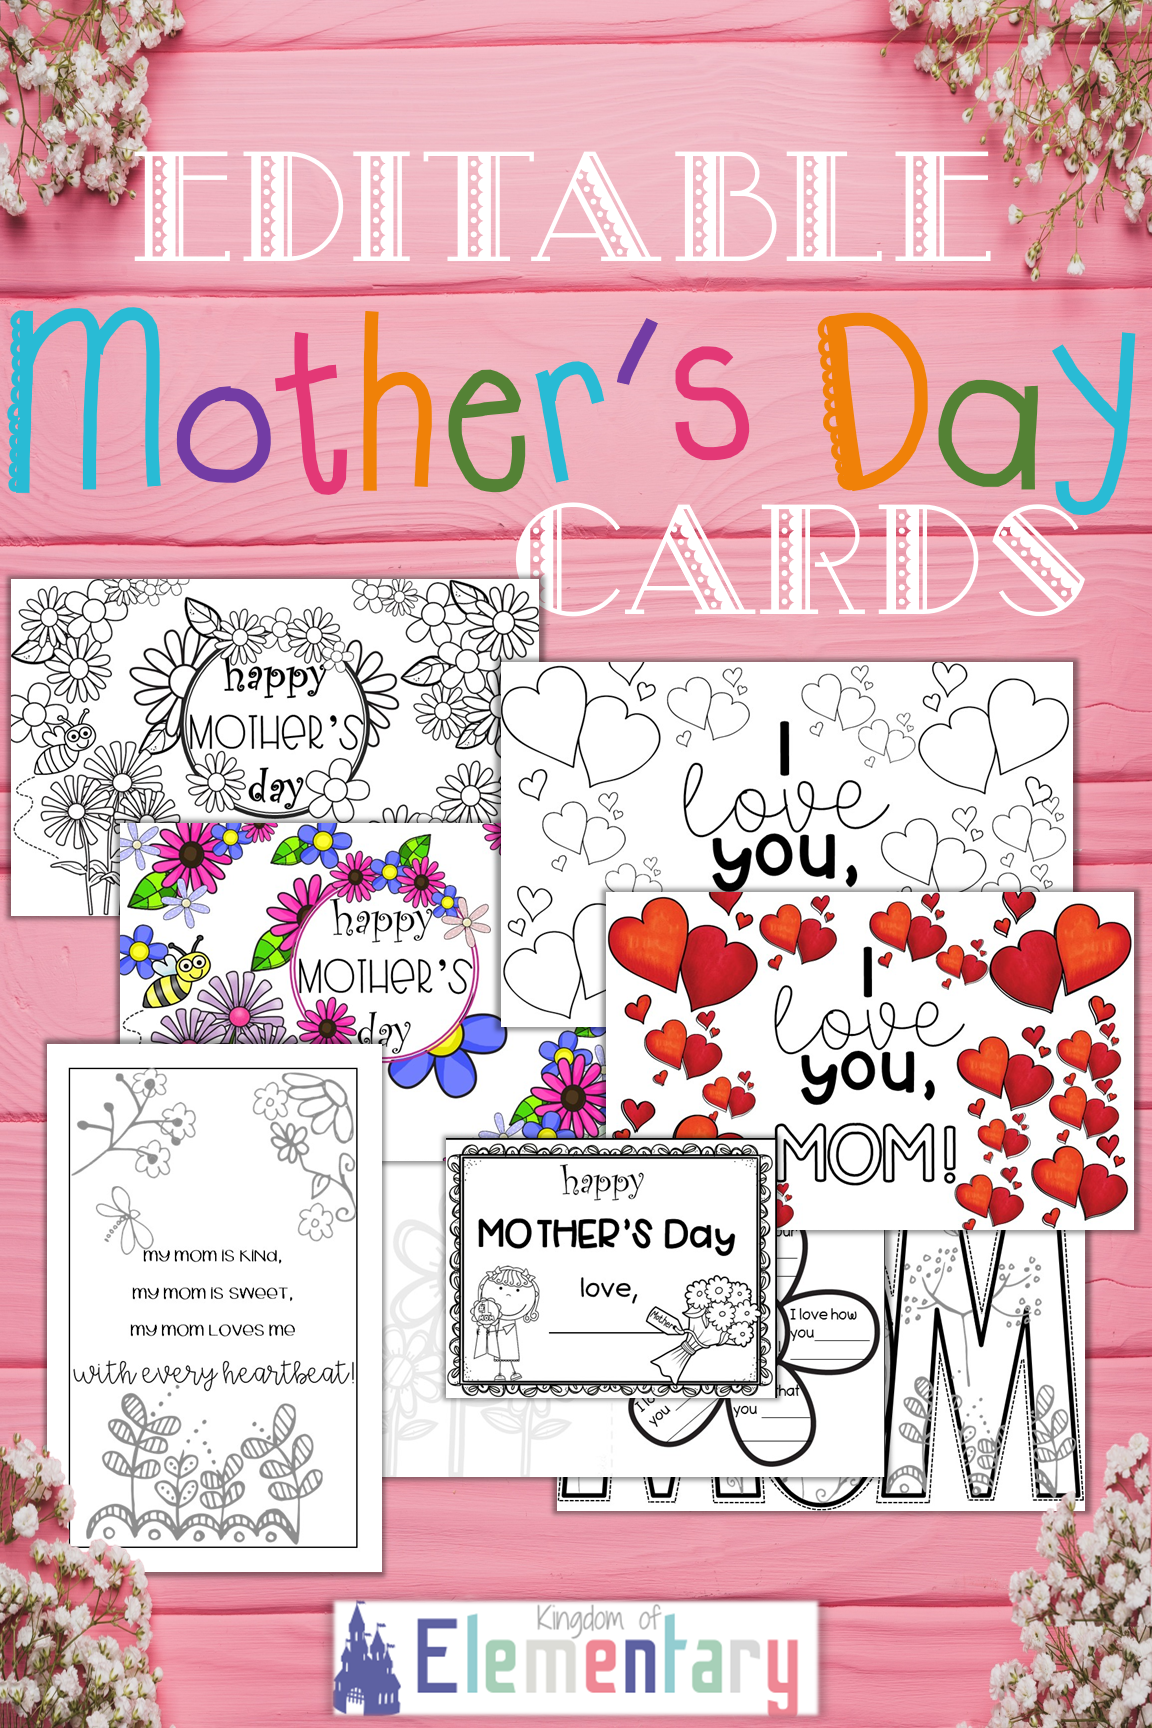 Editable Mother S Day Cards Printable Templates Mothers Day Cards Printable Mothers Day Cards Mothers Day Card Template